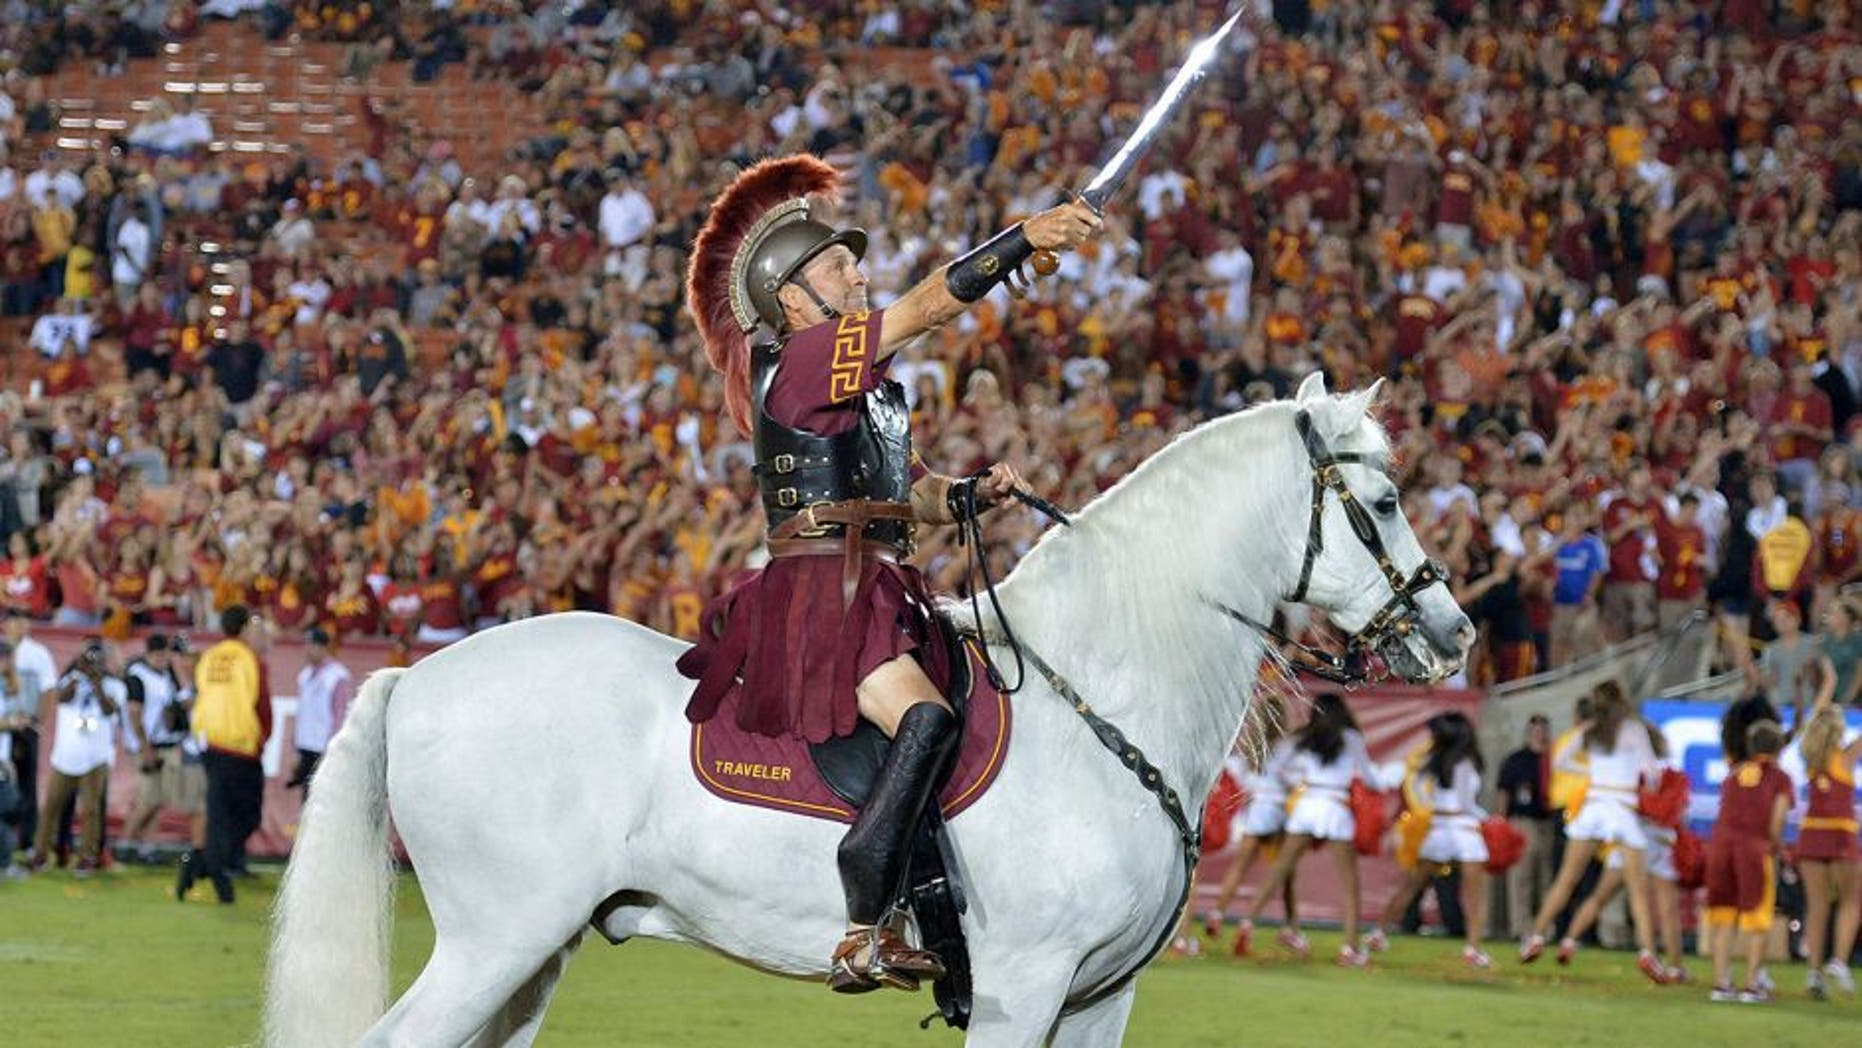 Sep 5, 2015; Los Angeles, CA, USA; Southern California Trojans white horse mascot Traveler with rider Hector Aguilar during the game against the Arkansas State Red Wolves at Los Angeles Memorial Coliseum. Mandatory Credit: Kirby Lee-USA TODAY Sports